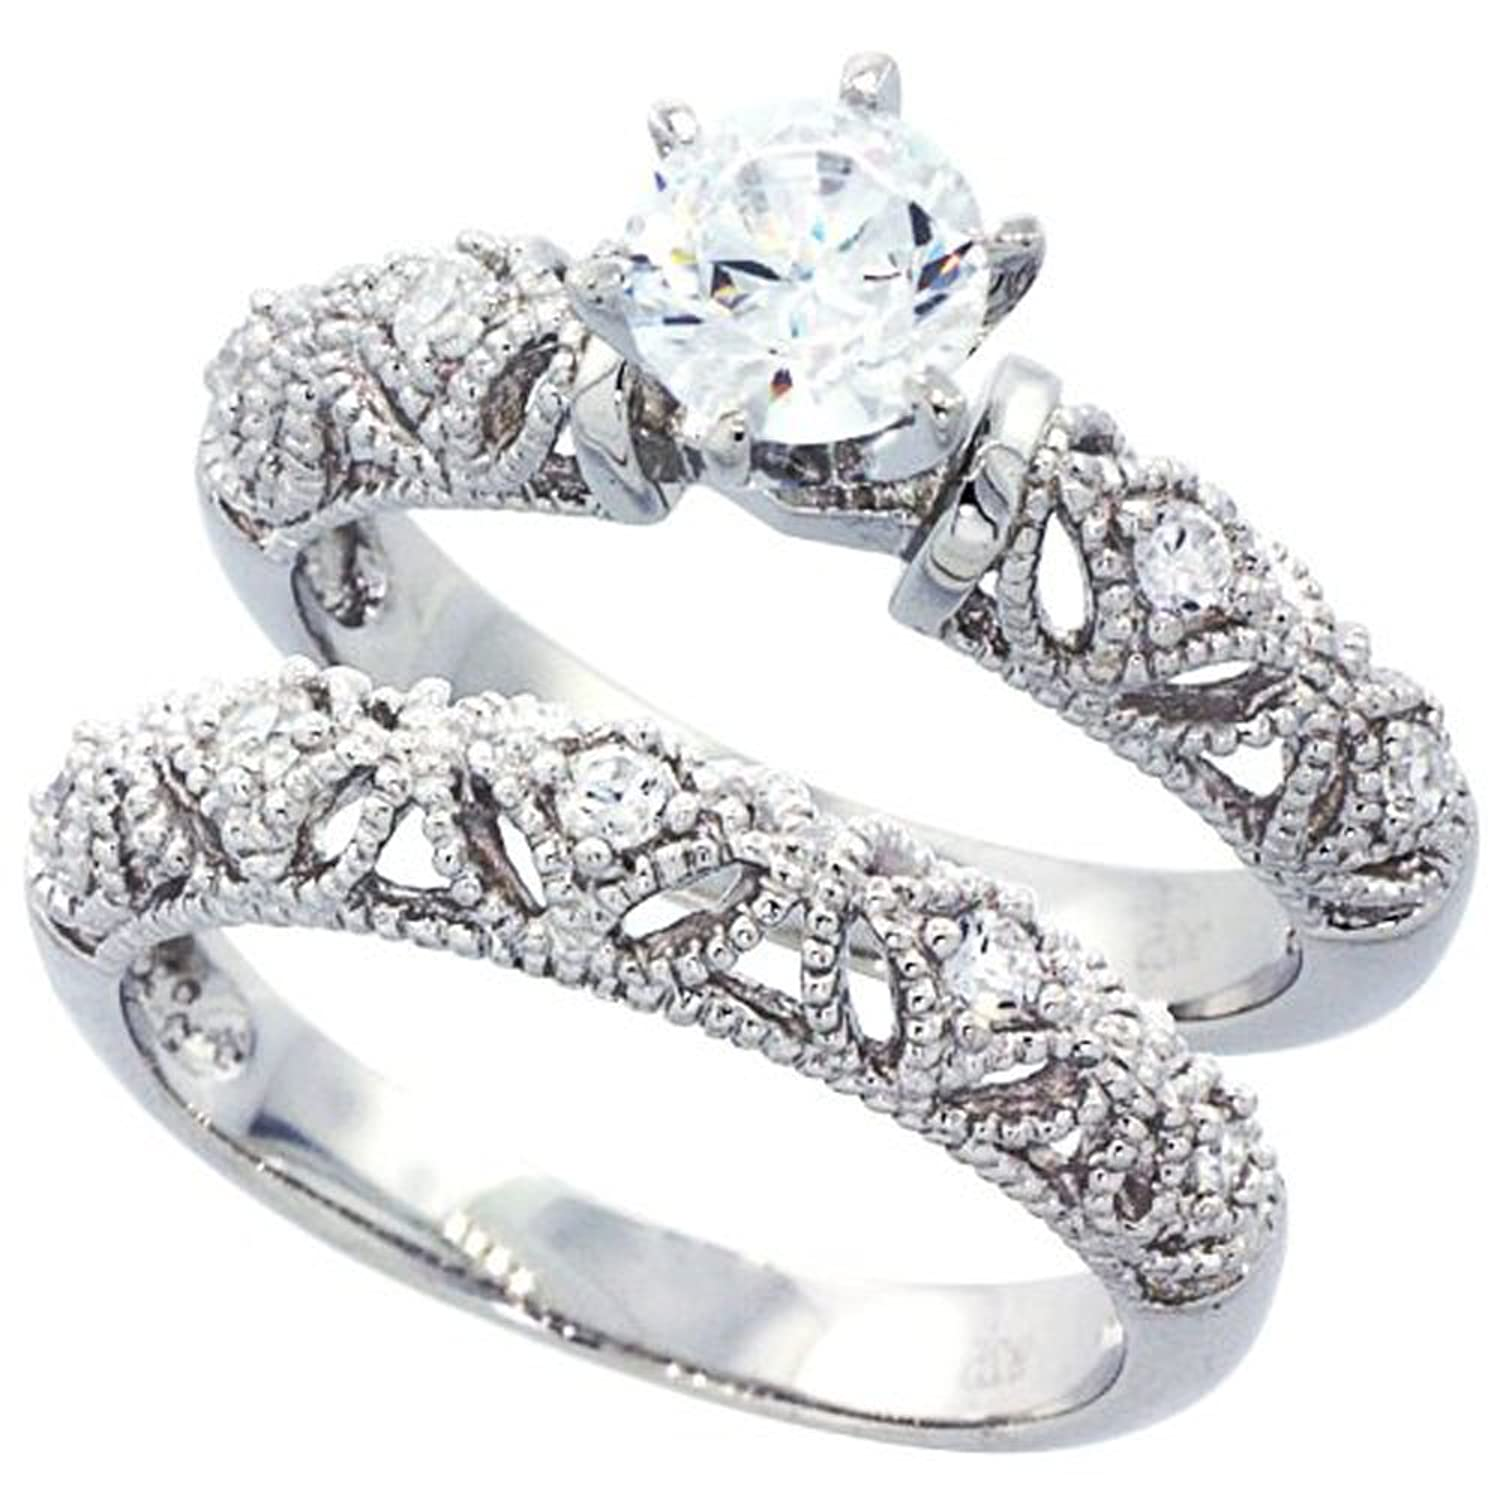 engagement courtesy diamond jewellery filigree weddings women rings under gallery main floral for glamour bands affordable